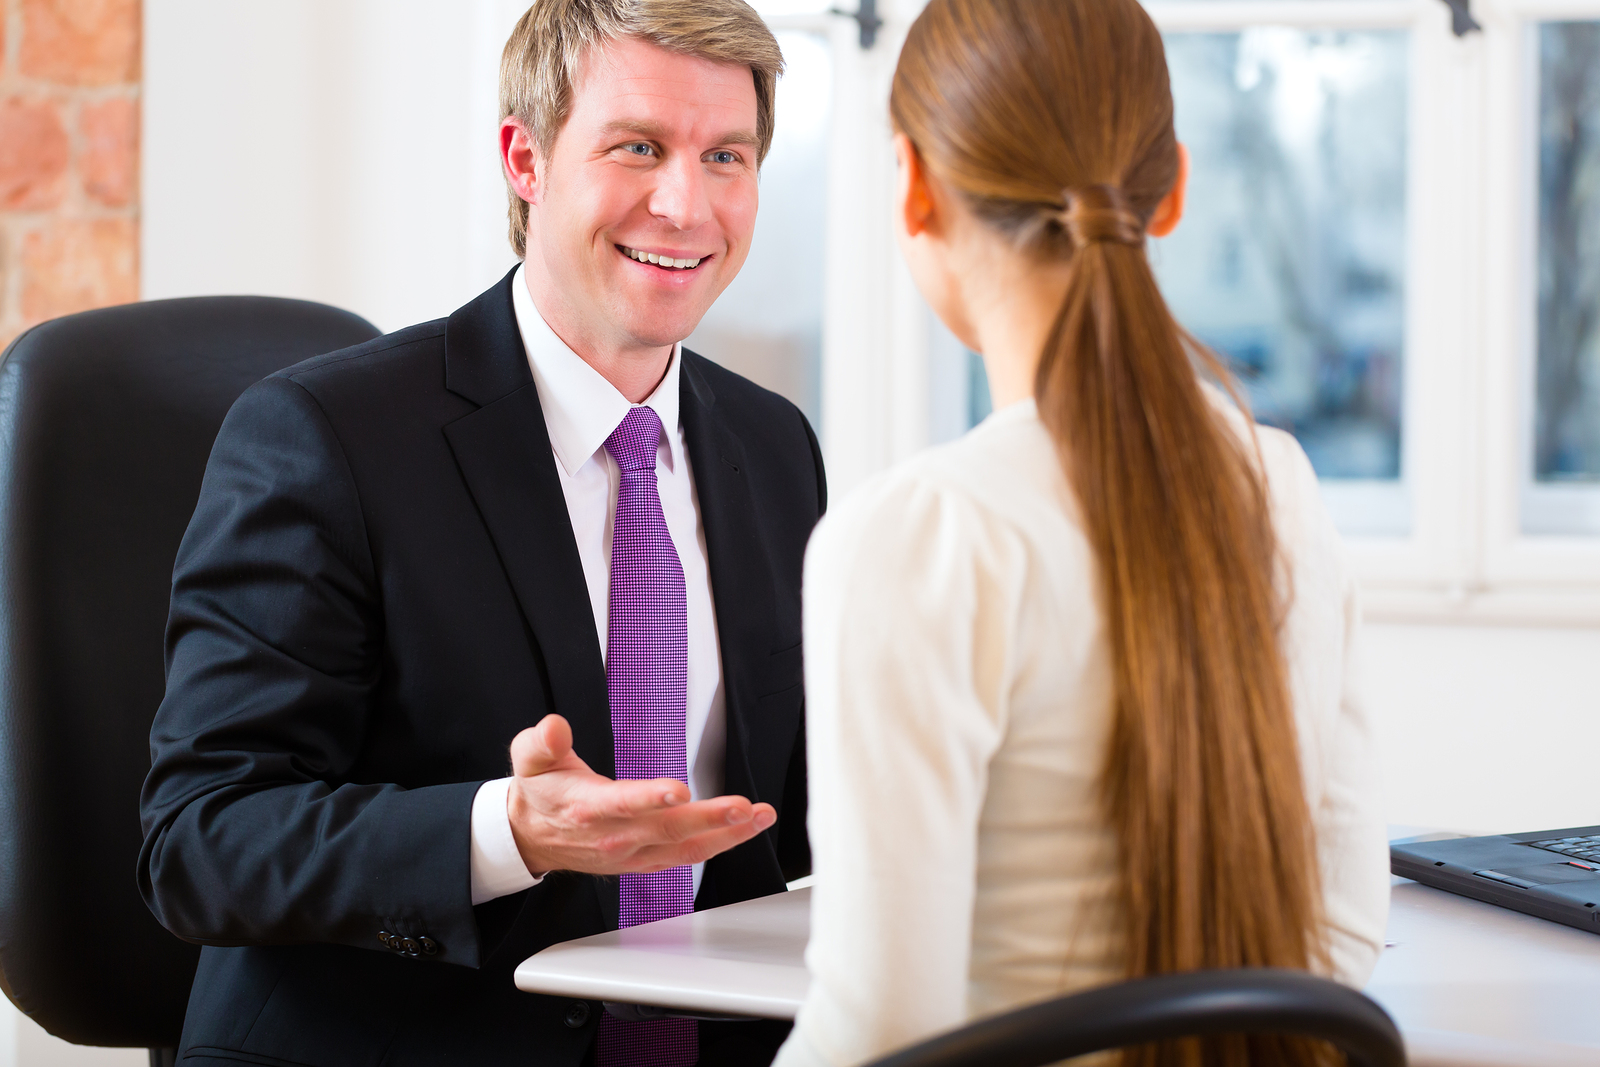 Divorce attorney dating a client texas